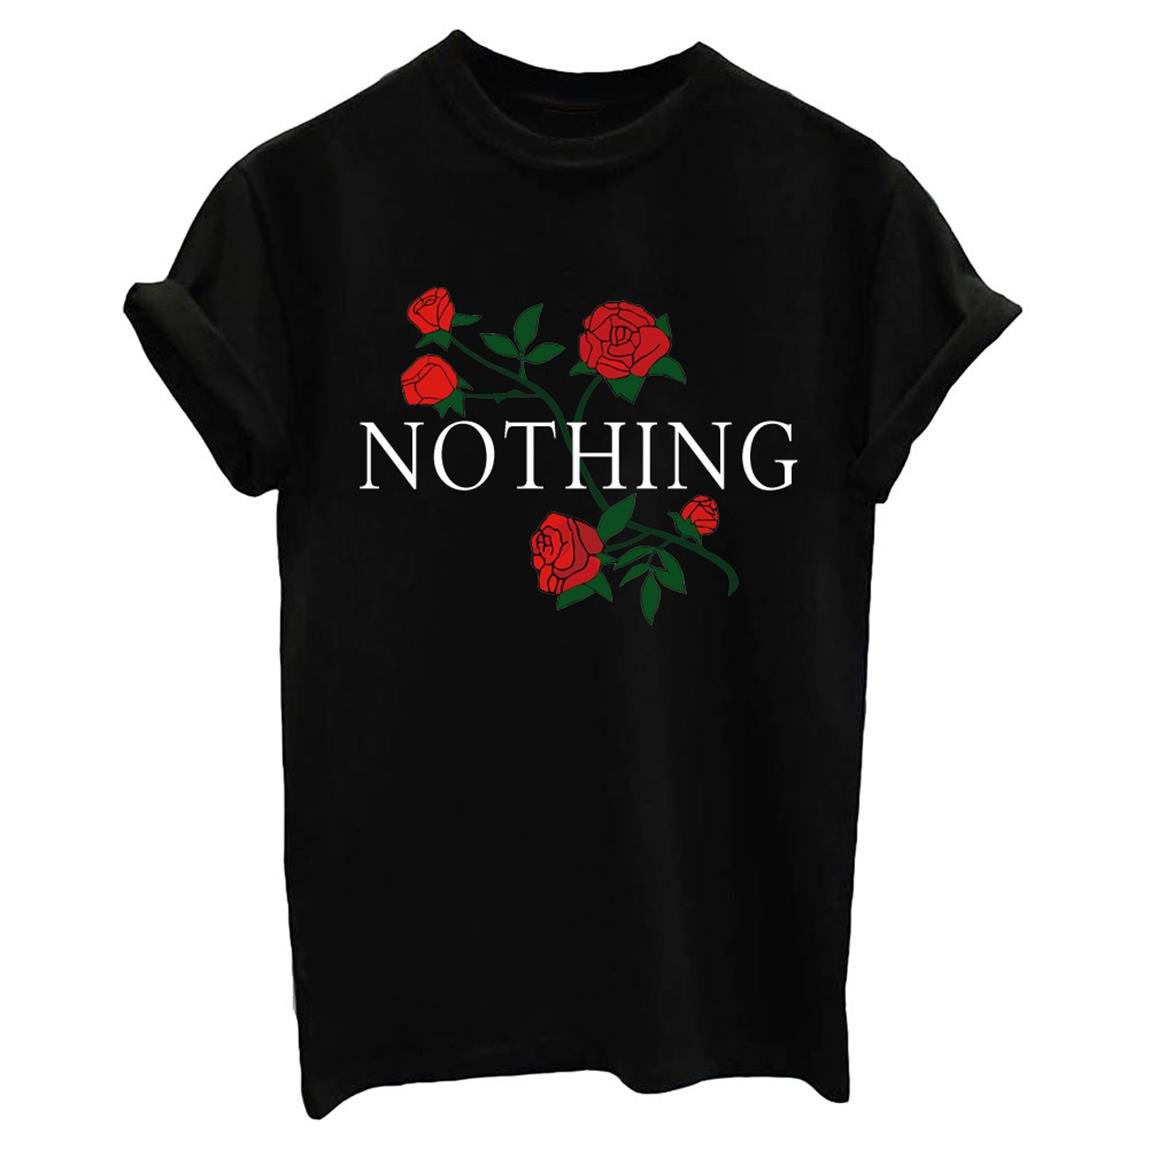 237a13b6fedfd Amazon.com  BLACKMYTH Women Summer NOTHING Rose Print Short Sleeve Top Tee  Graphic Cute T-shirt  Clothing